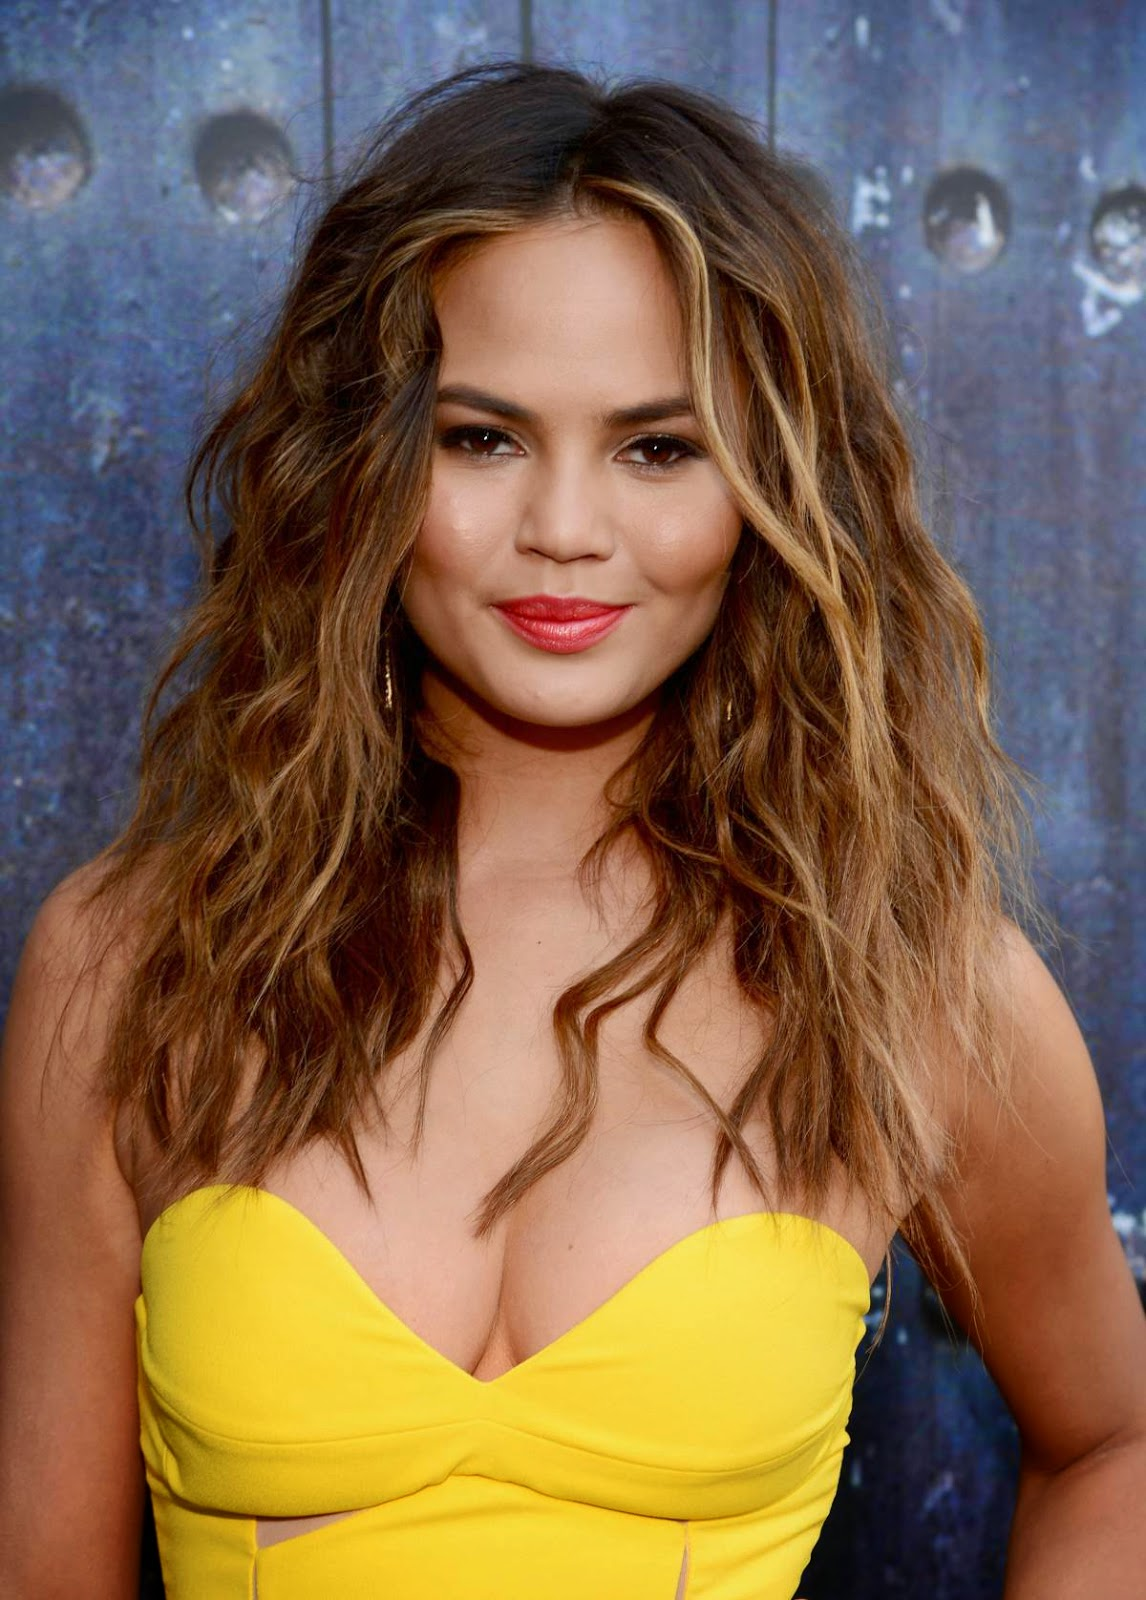 Chrissy Teigen - Hot Cleavage Show in Spike TV's Guys Choice 2014 Awards